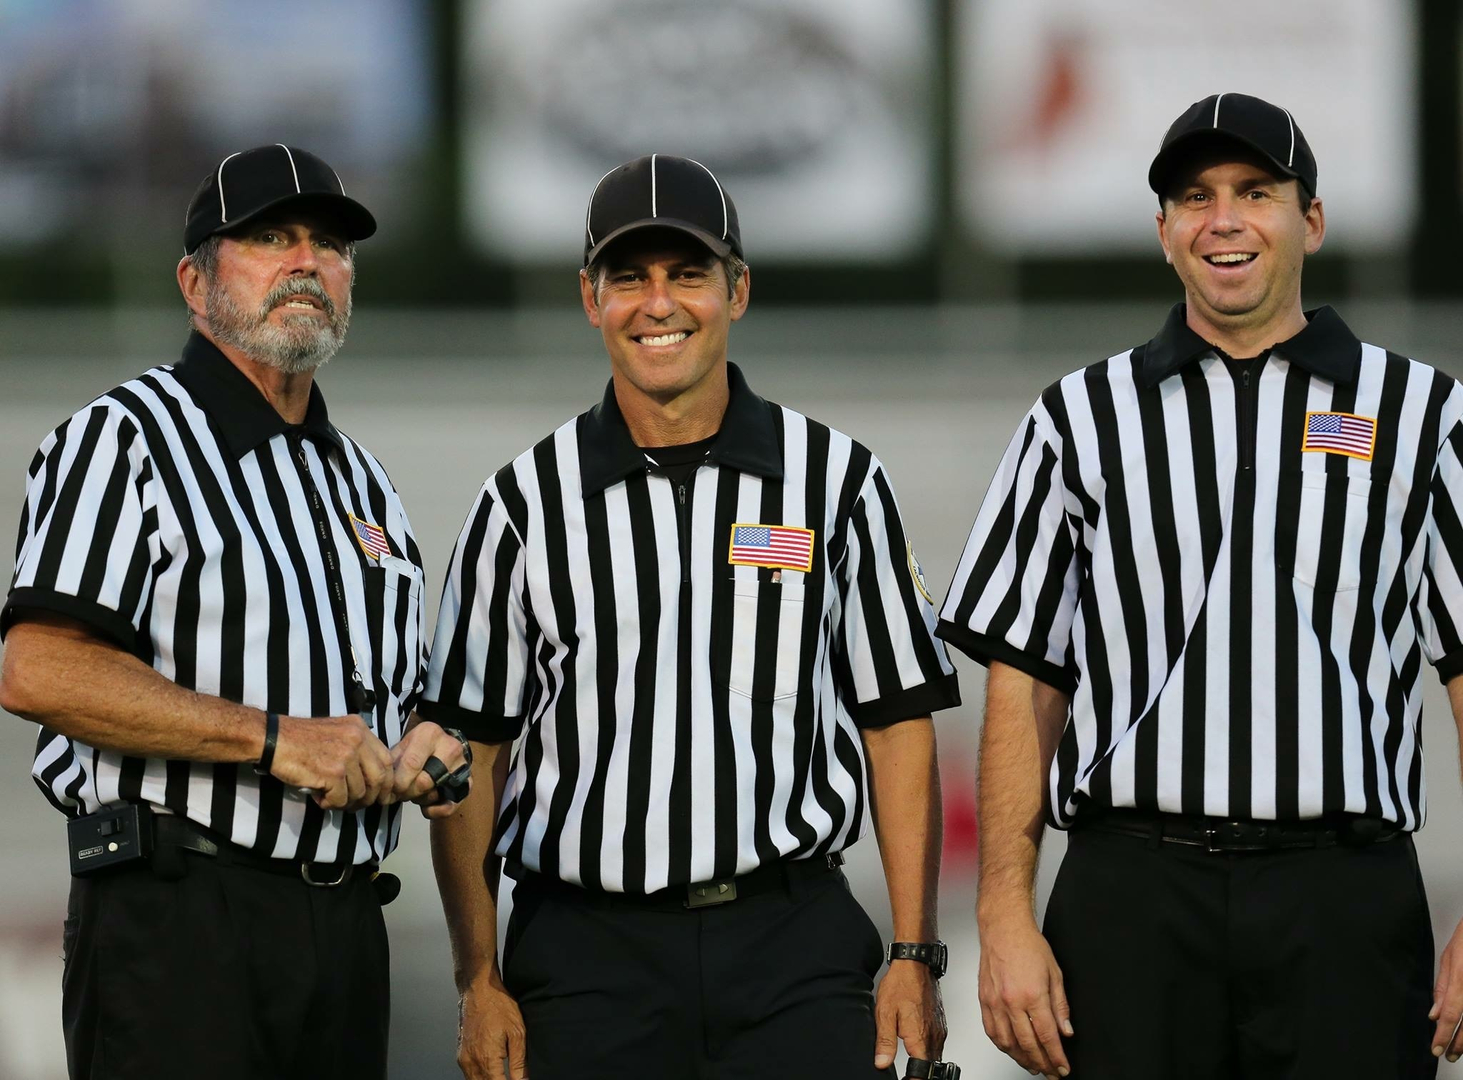 Referee Image